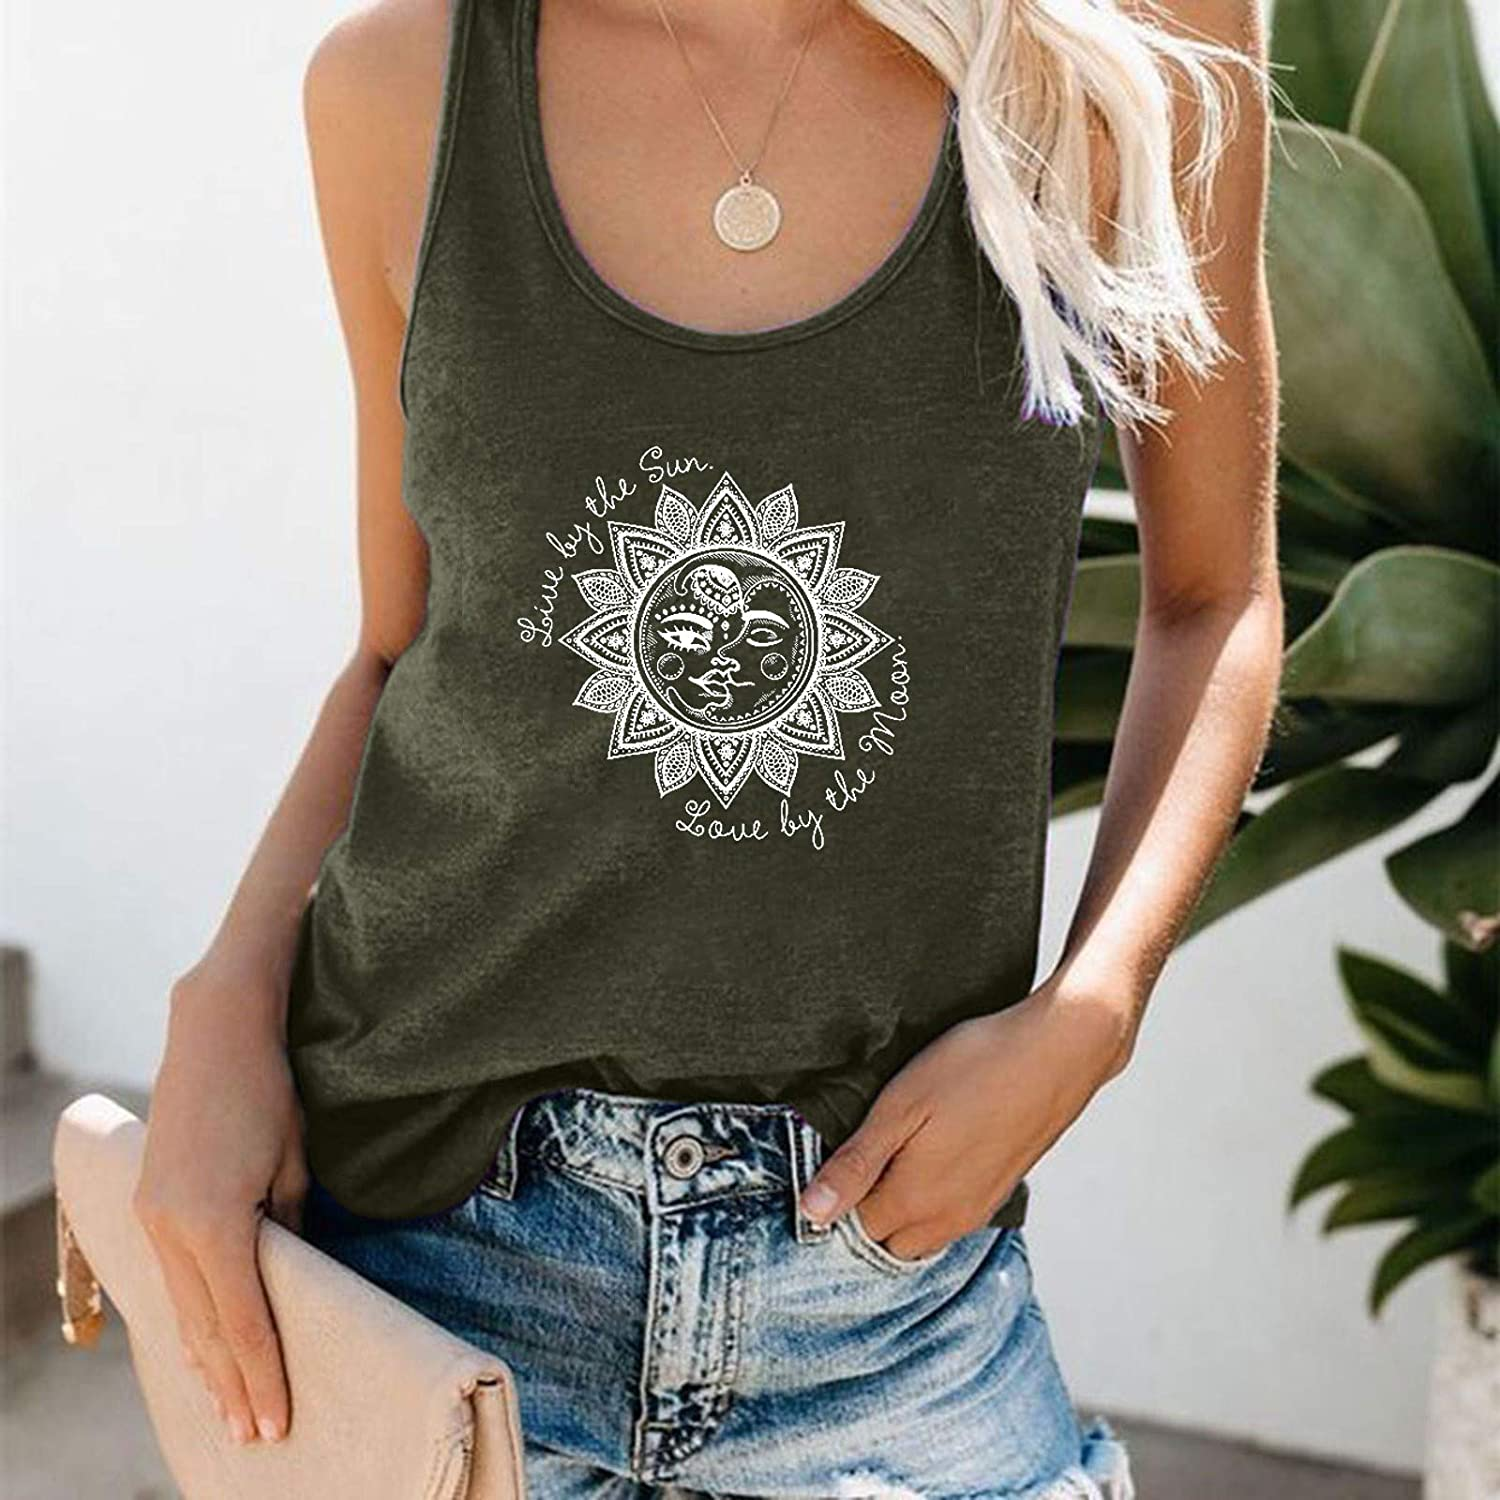 Gerichy Tank Tops for Women, Womens Plus Size Casual Summer Sleeveless Loose Fit Blouses Tees Tank Shirts Tunics Vest